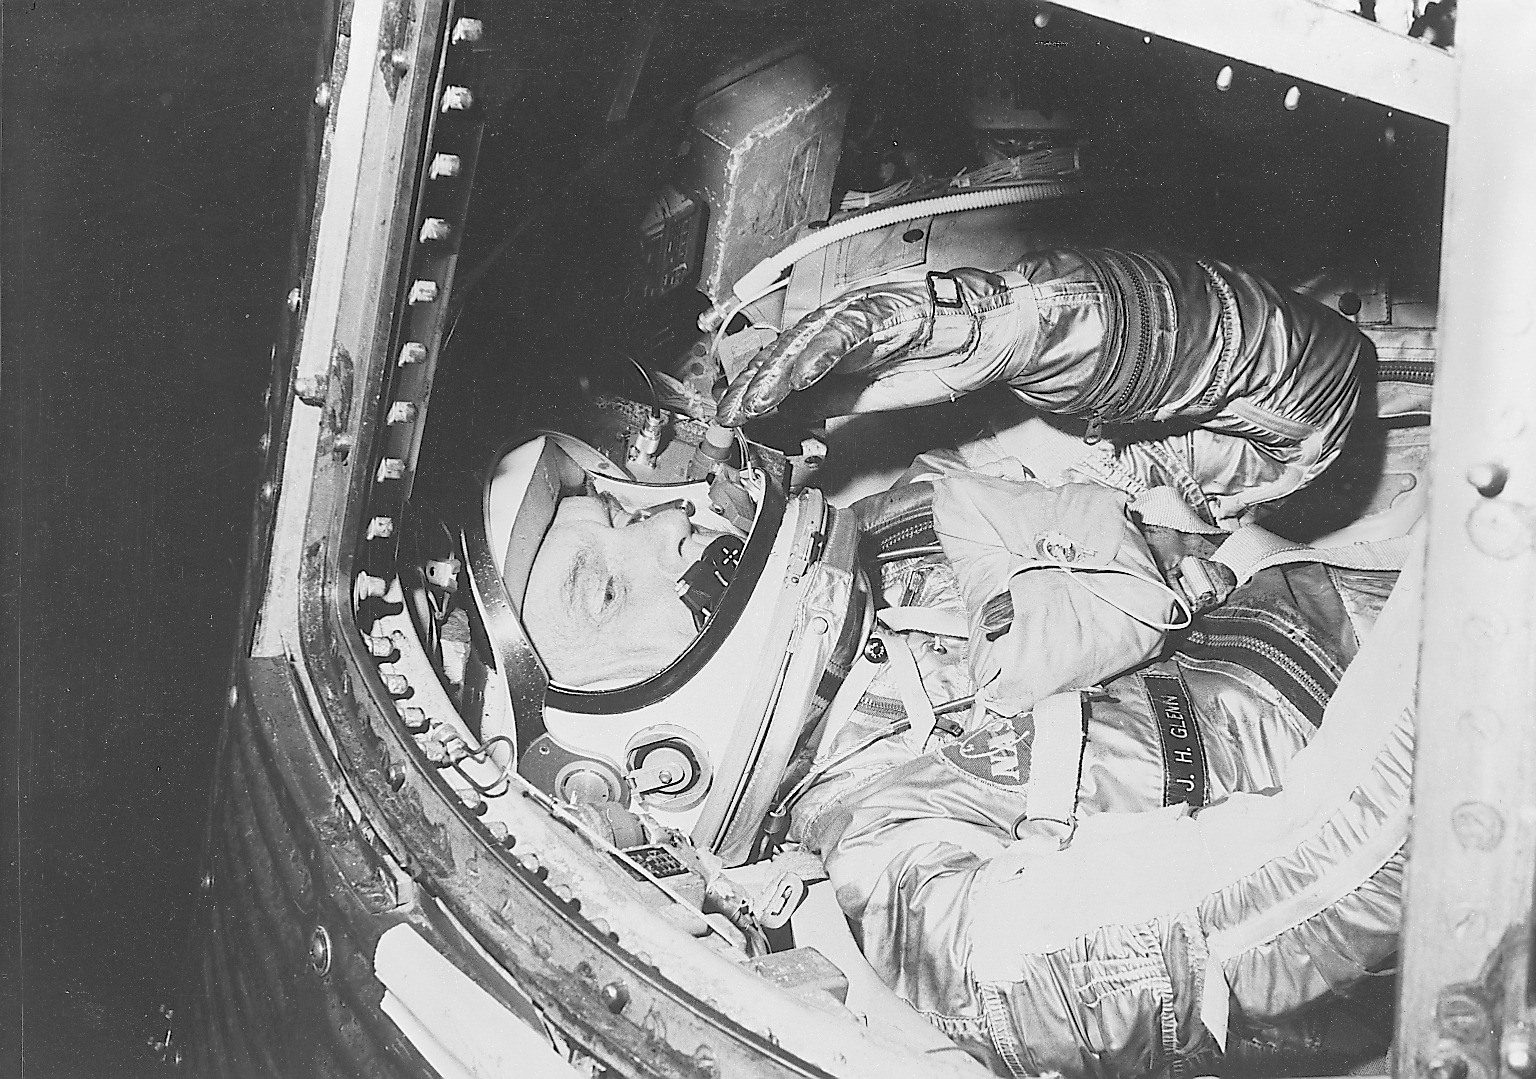 John Glenn, First American in Orbit